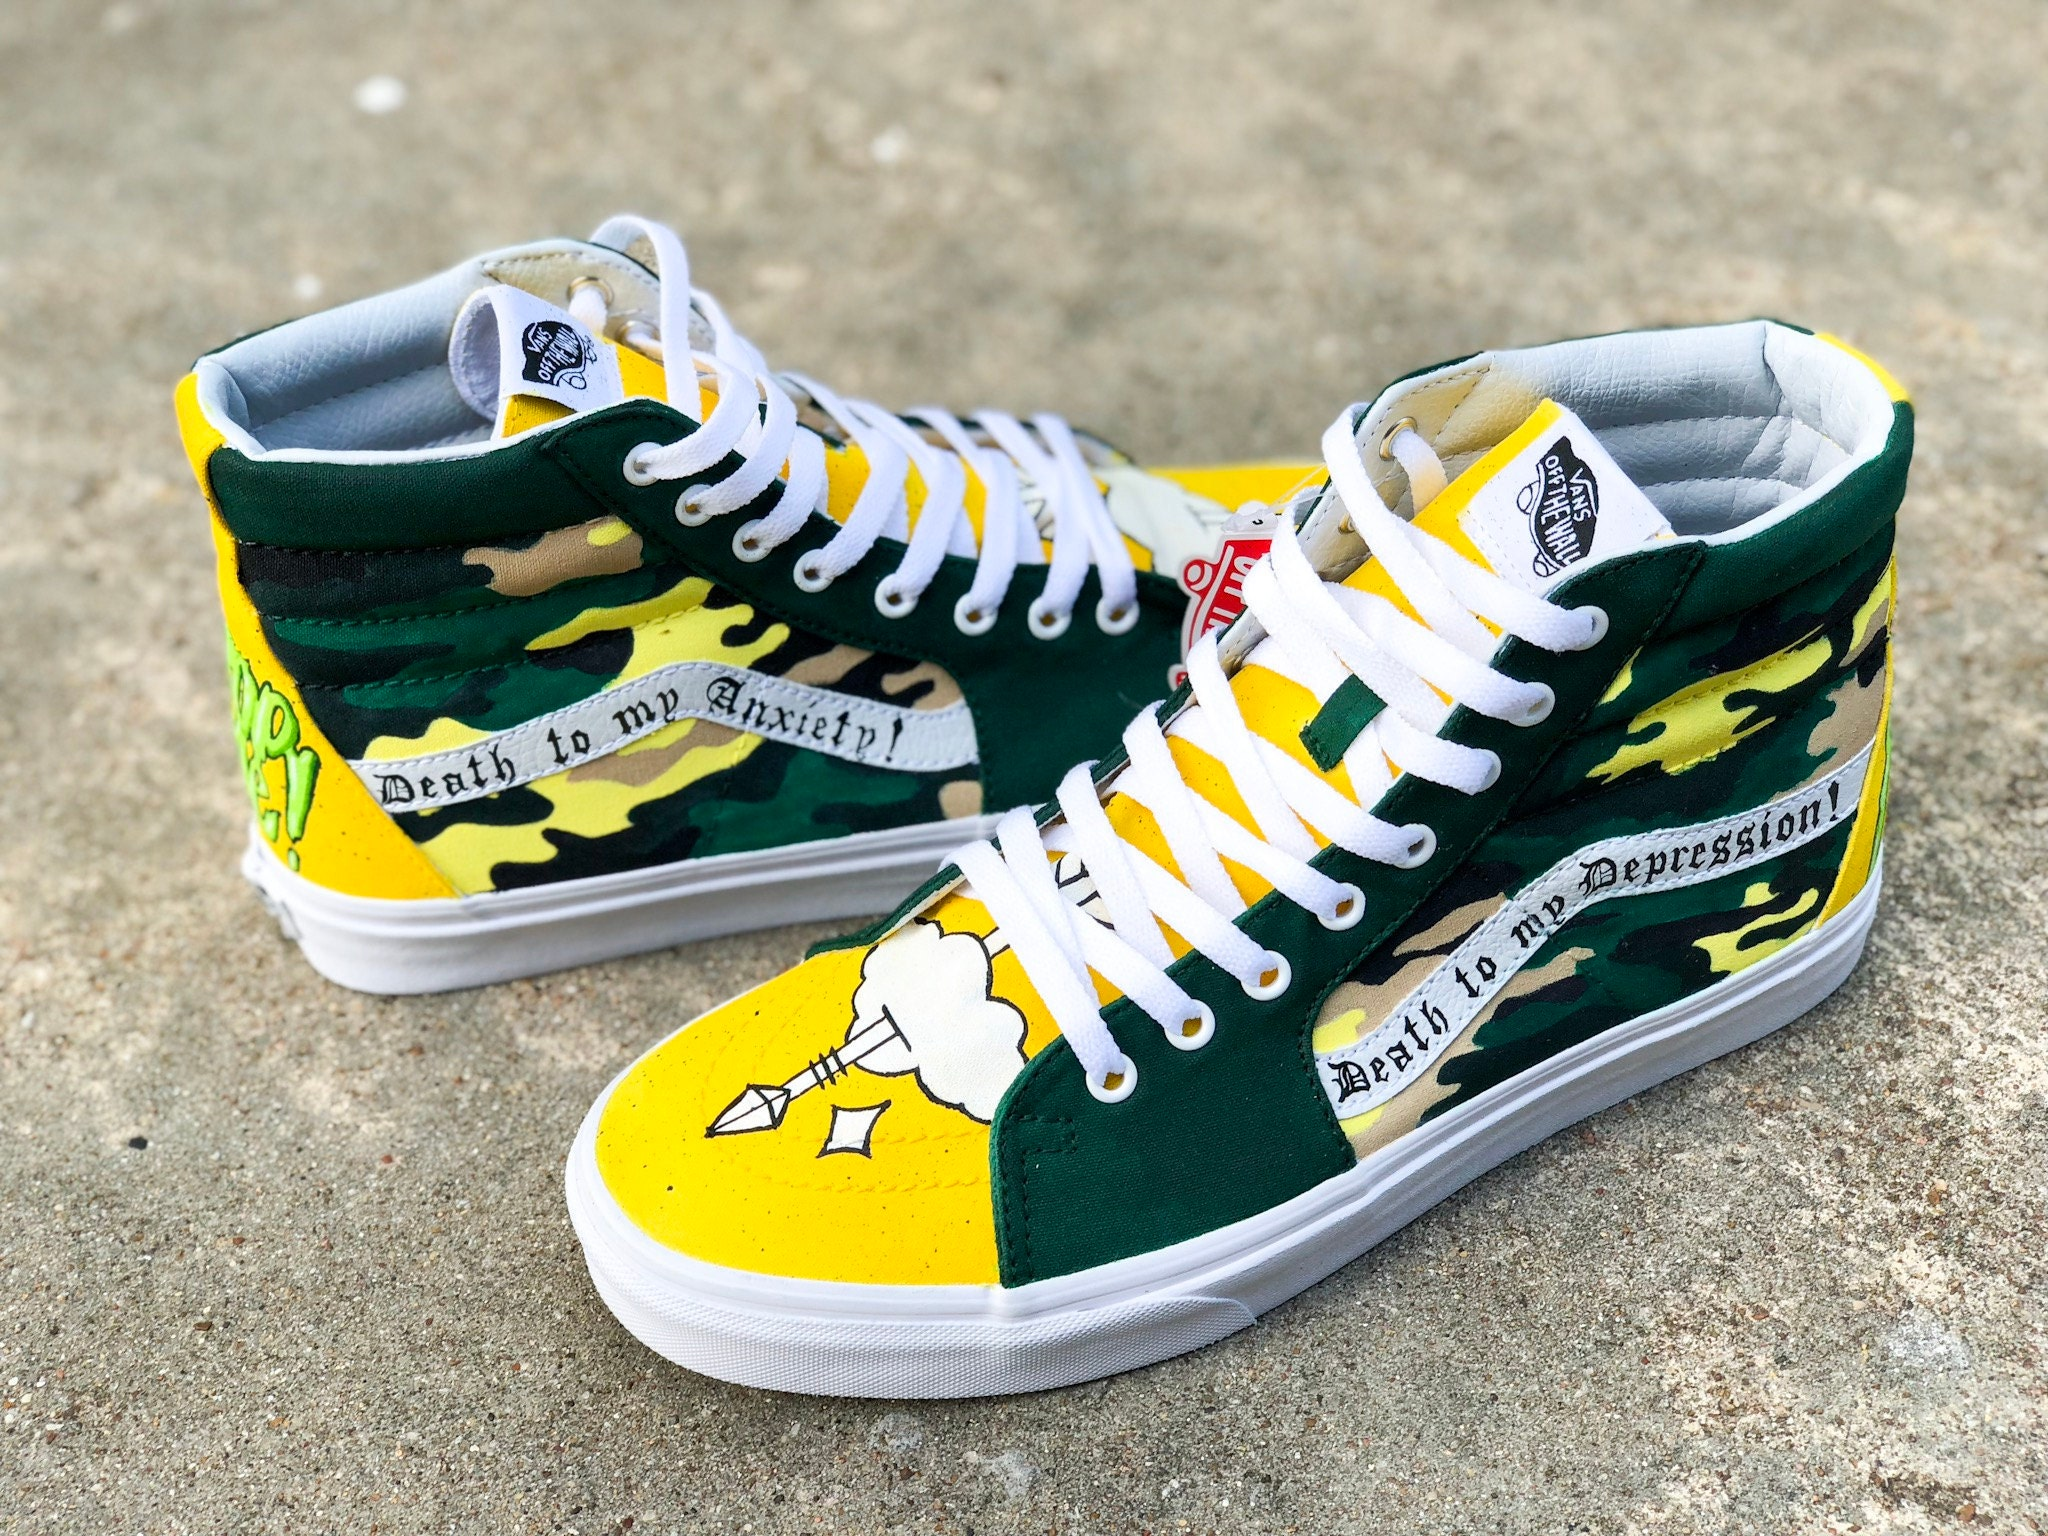 9c655c70b244e Andy Mineo 116/Miner League Custom Vans Sk8His made specifically for Andy  Mineo